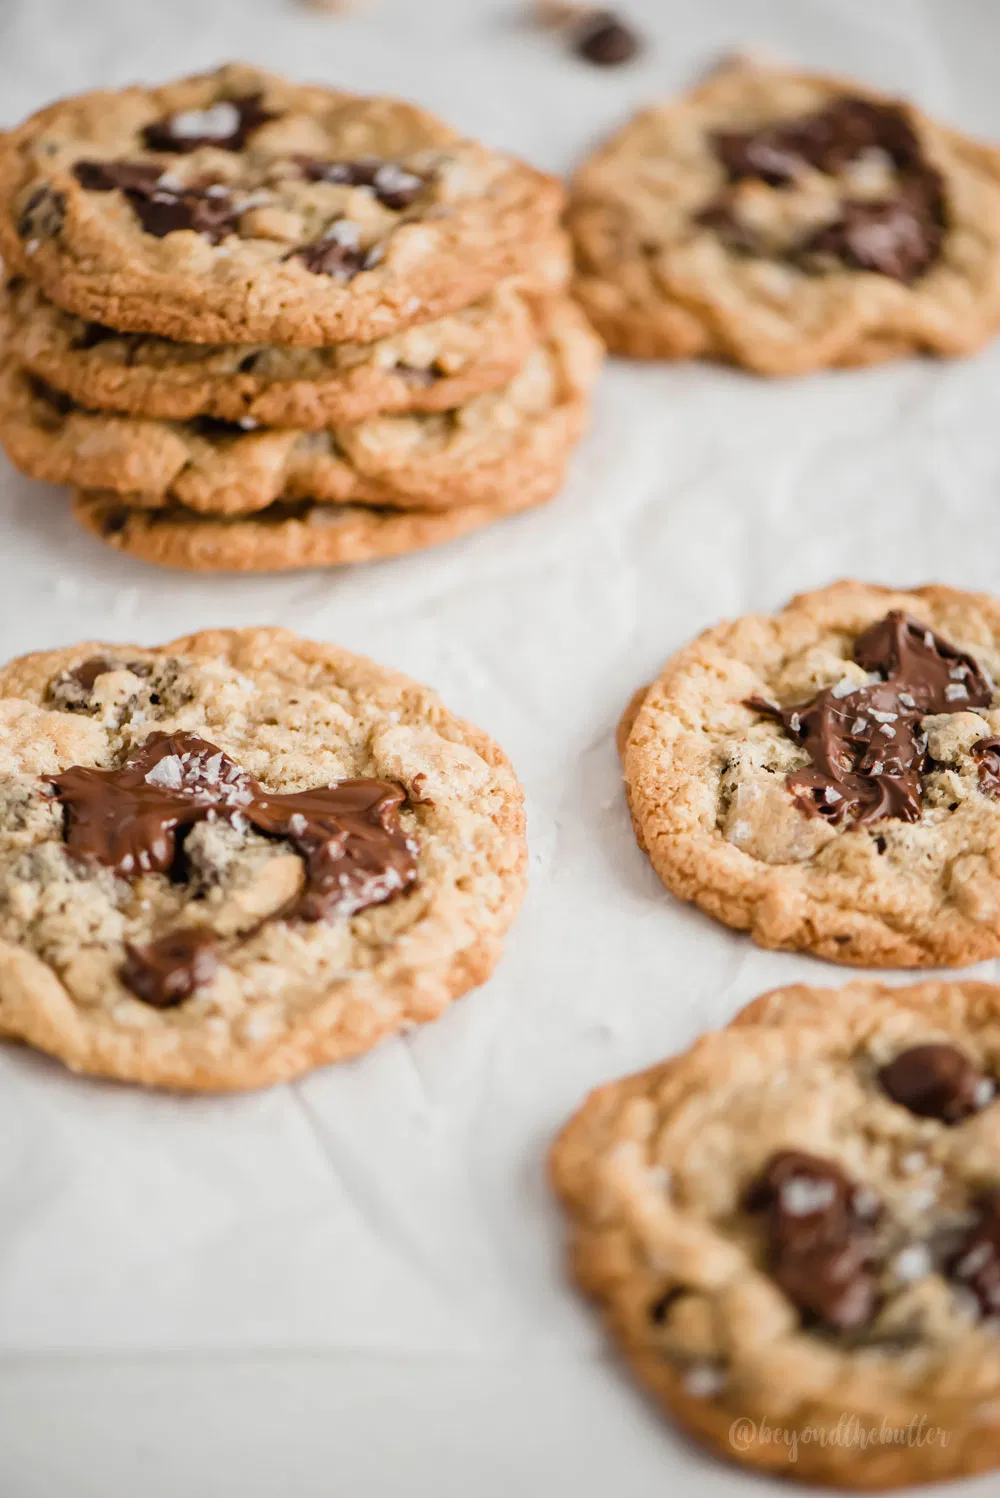 These are THE BEST Oatmeal Chocolate Chip Salted Caramel Cookies ever! They're a much bigger, more spread out cookie that is thin and slightly crispy on the outside, but oh-so-delicious and chewy on the inside. They are absolutely perfect! #oatmealchocolatechipcookies #oatmealcookies #chocolatechipcookies #saltedcaramelcookies #cookies #easycookierecipes #dessertrecipes